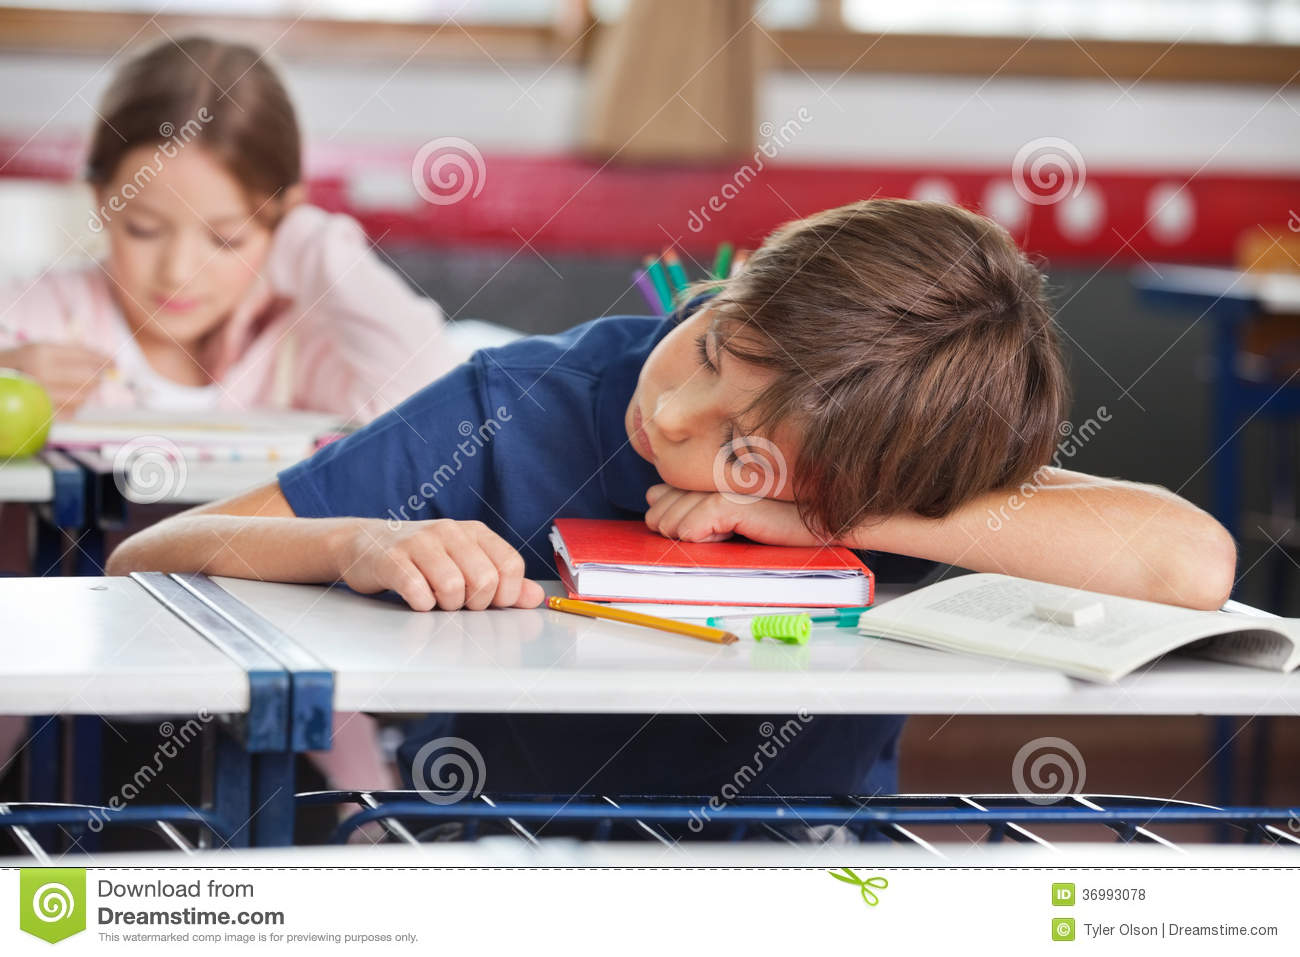 sleep and school work Types extrinsic type one of these disorders is extrinsic (from latin extrinsecus, from without, on the outside) or circumstantial: shift work sleep disorder, which.